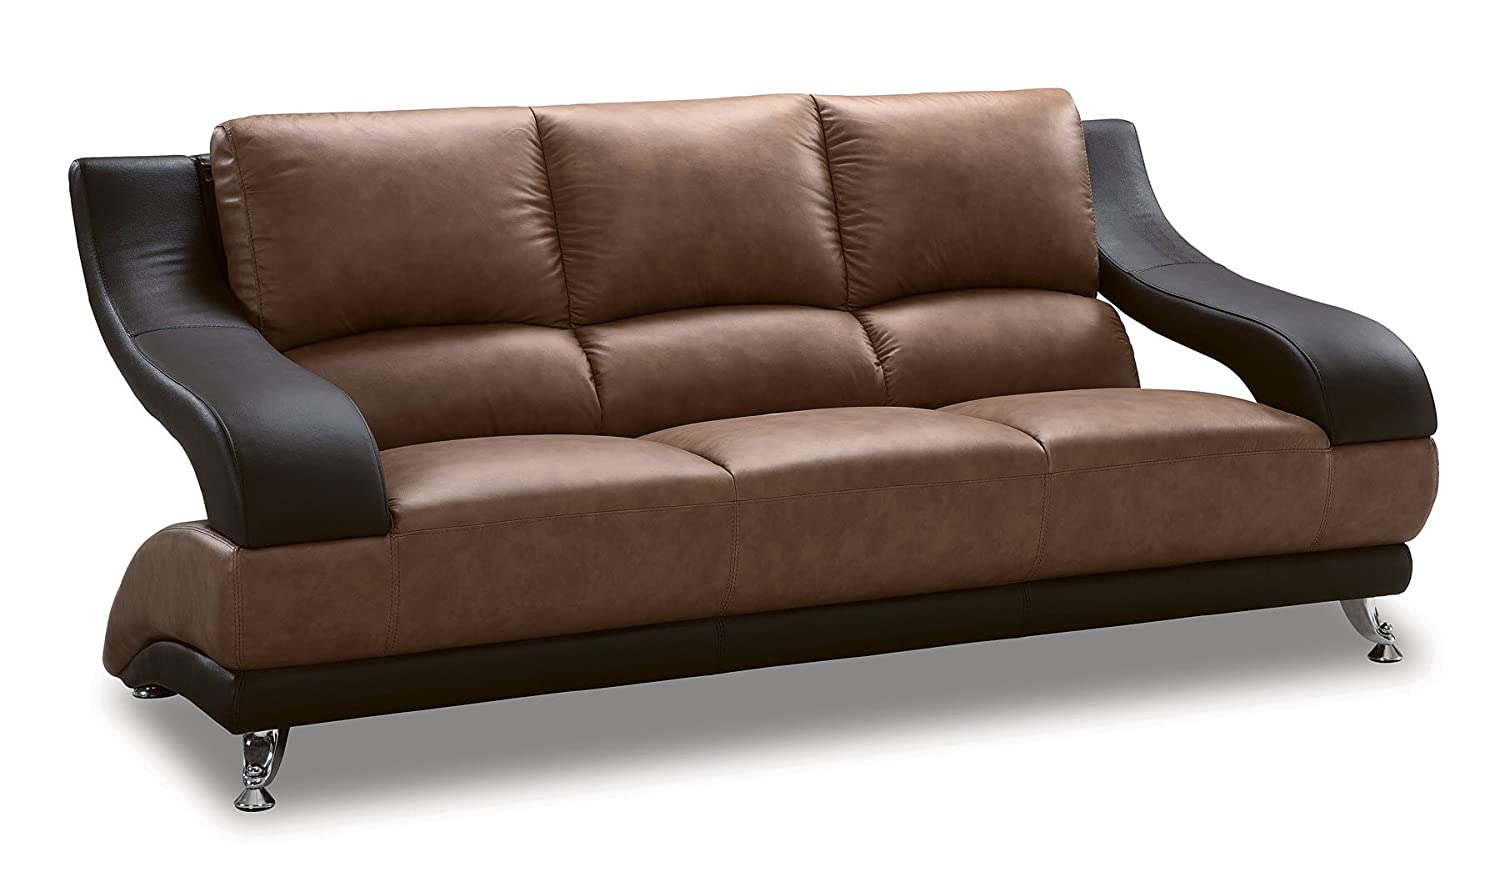 Global Furniture Wyatt Collection Leather Matching Sofa - Brown and Dark Brown